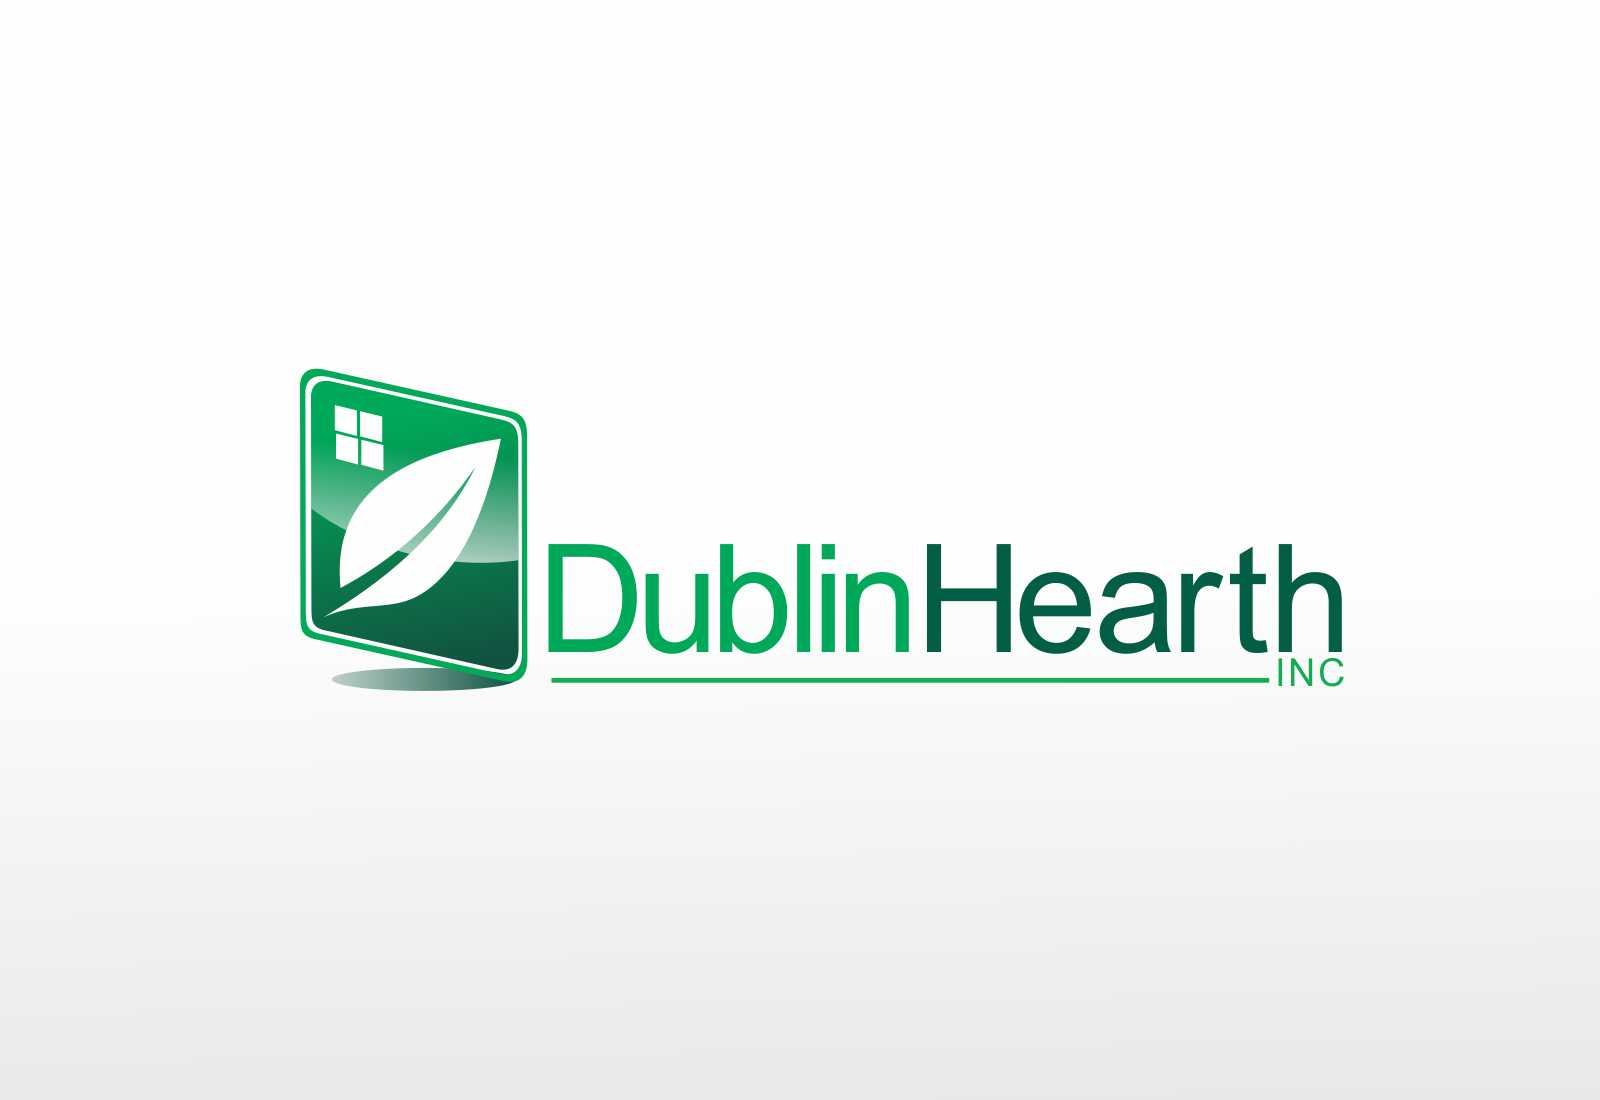 Logo Design by Web Sourcing - Entry No. 117 in the Logo Design Contest clean professional  Logo Design for Dublin Hearth Inc. with a splash of fun with letter head.